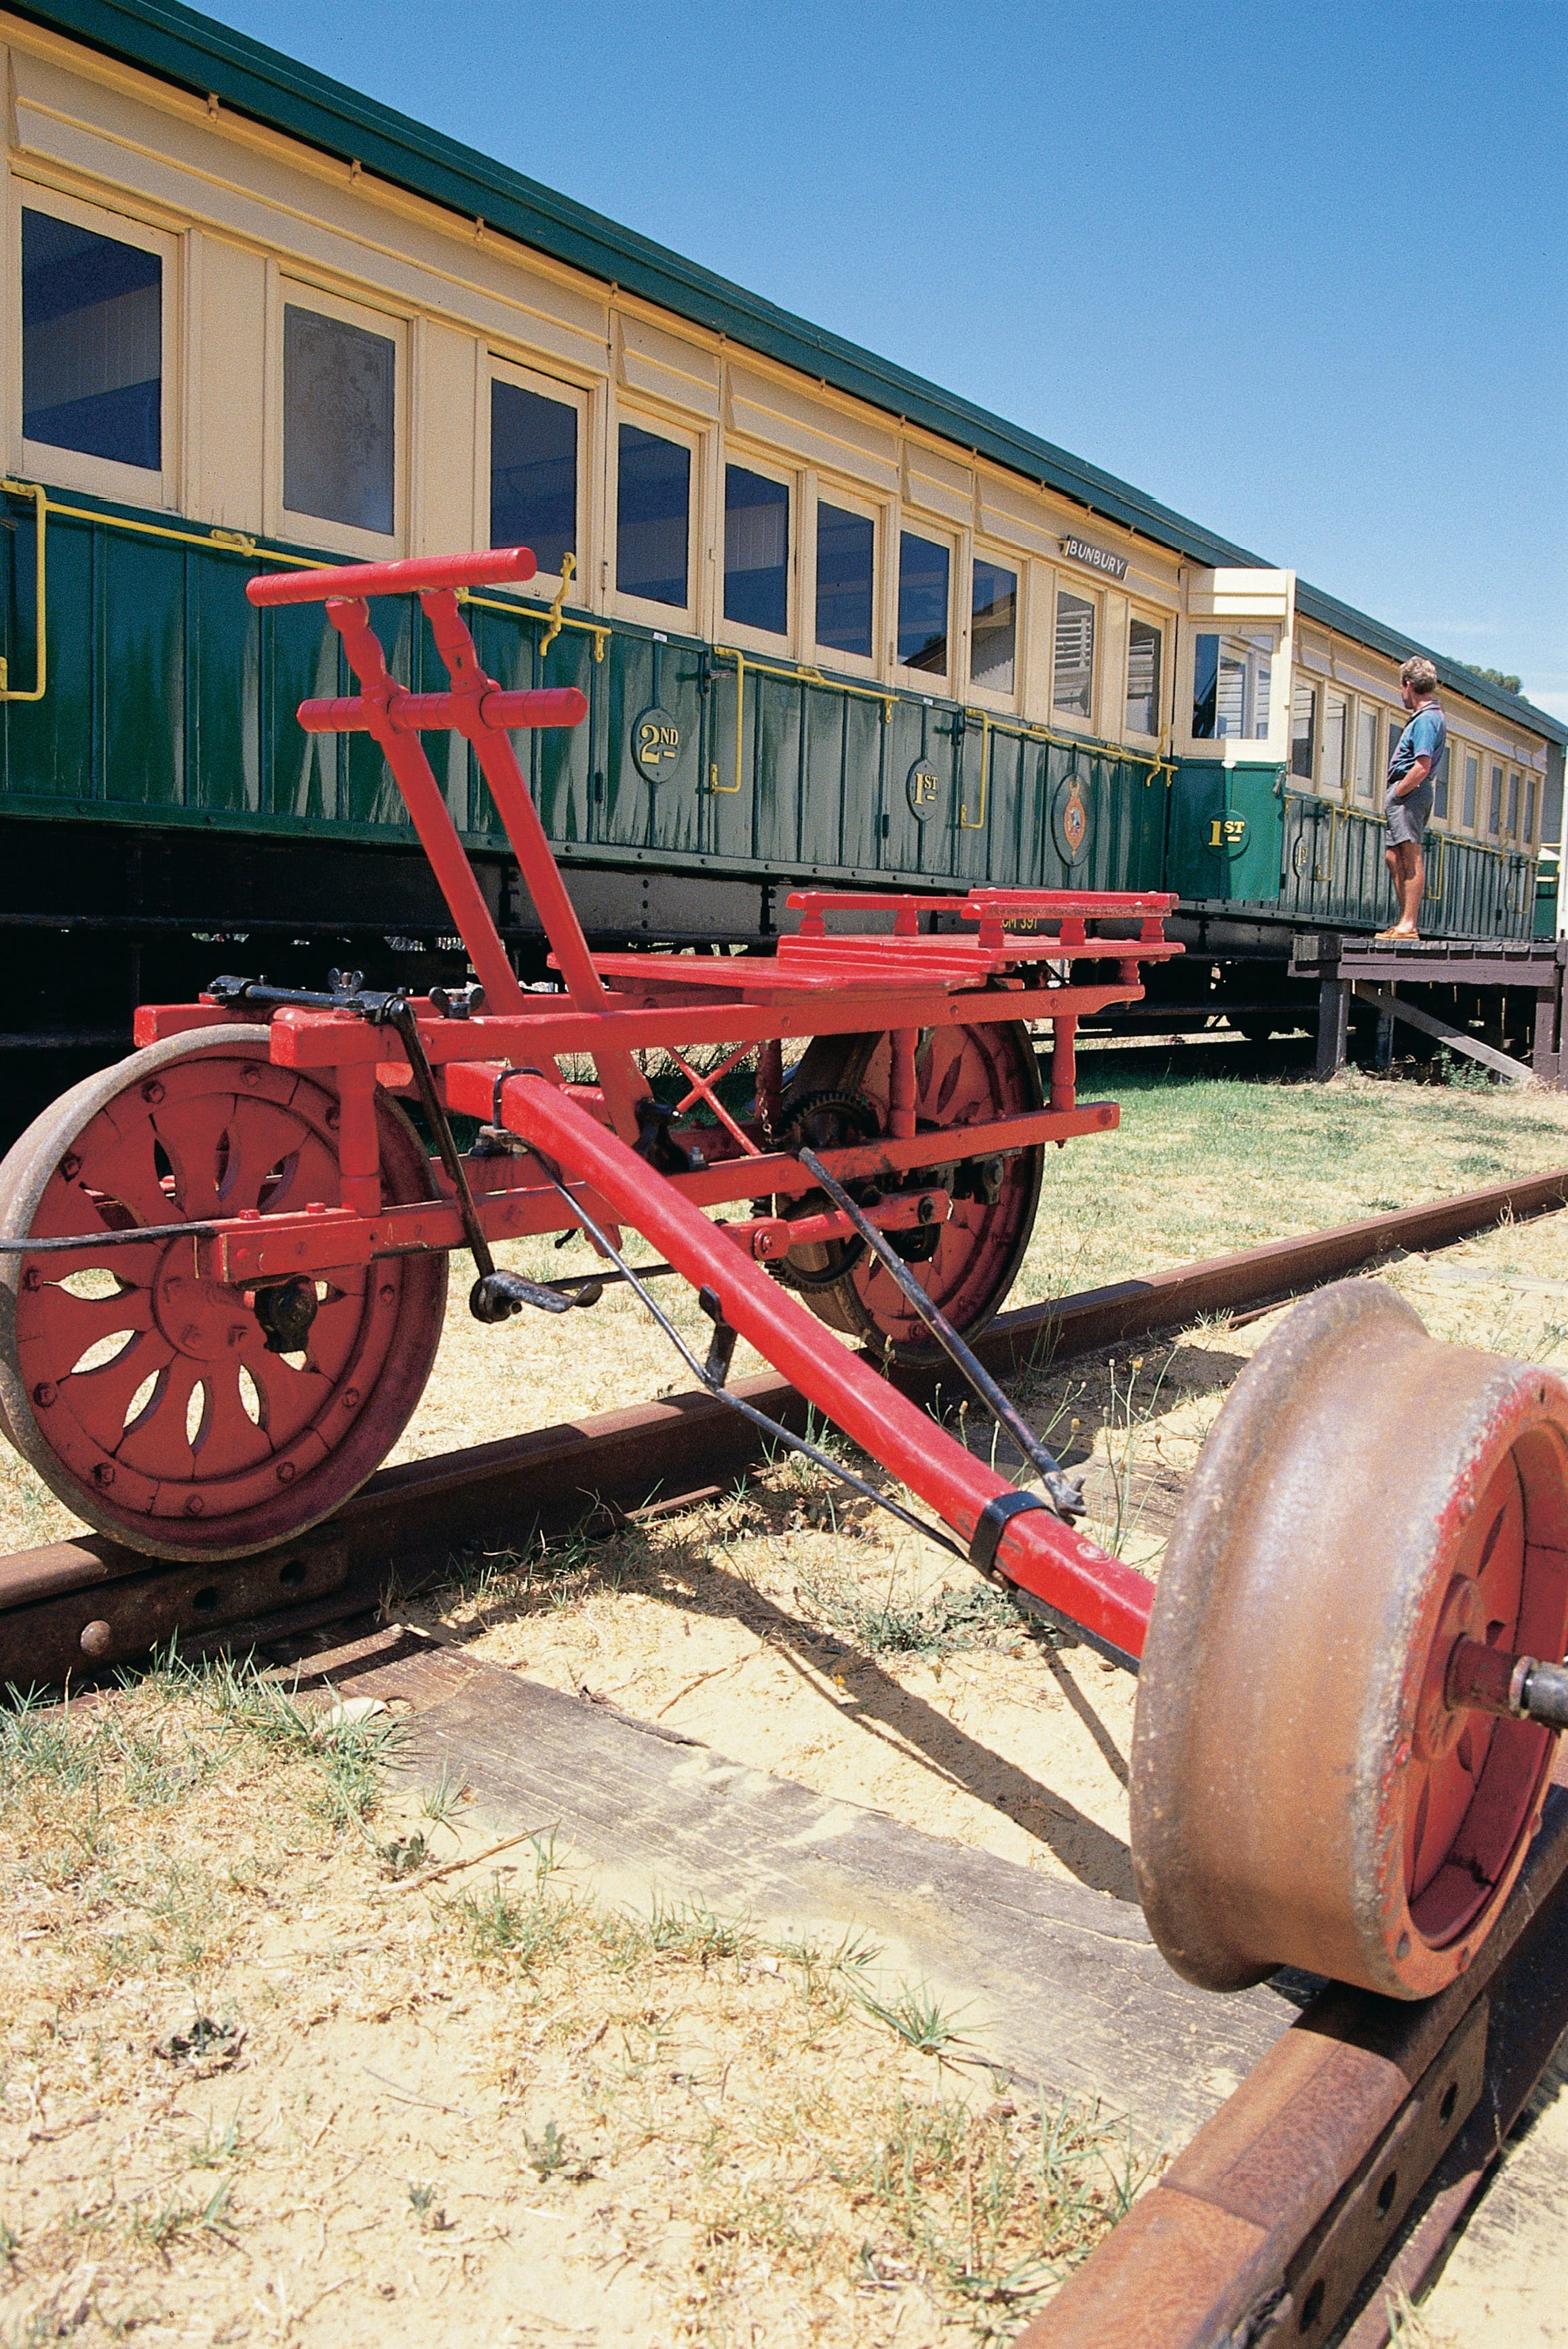 South West Rail and Heritage Centre - Accommodation Fremantle